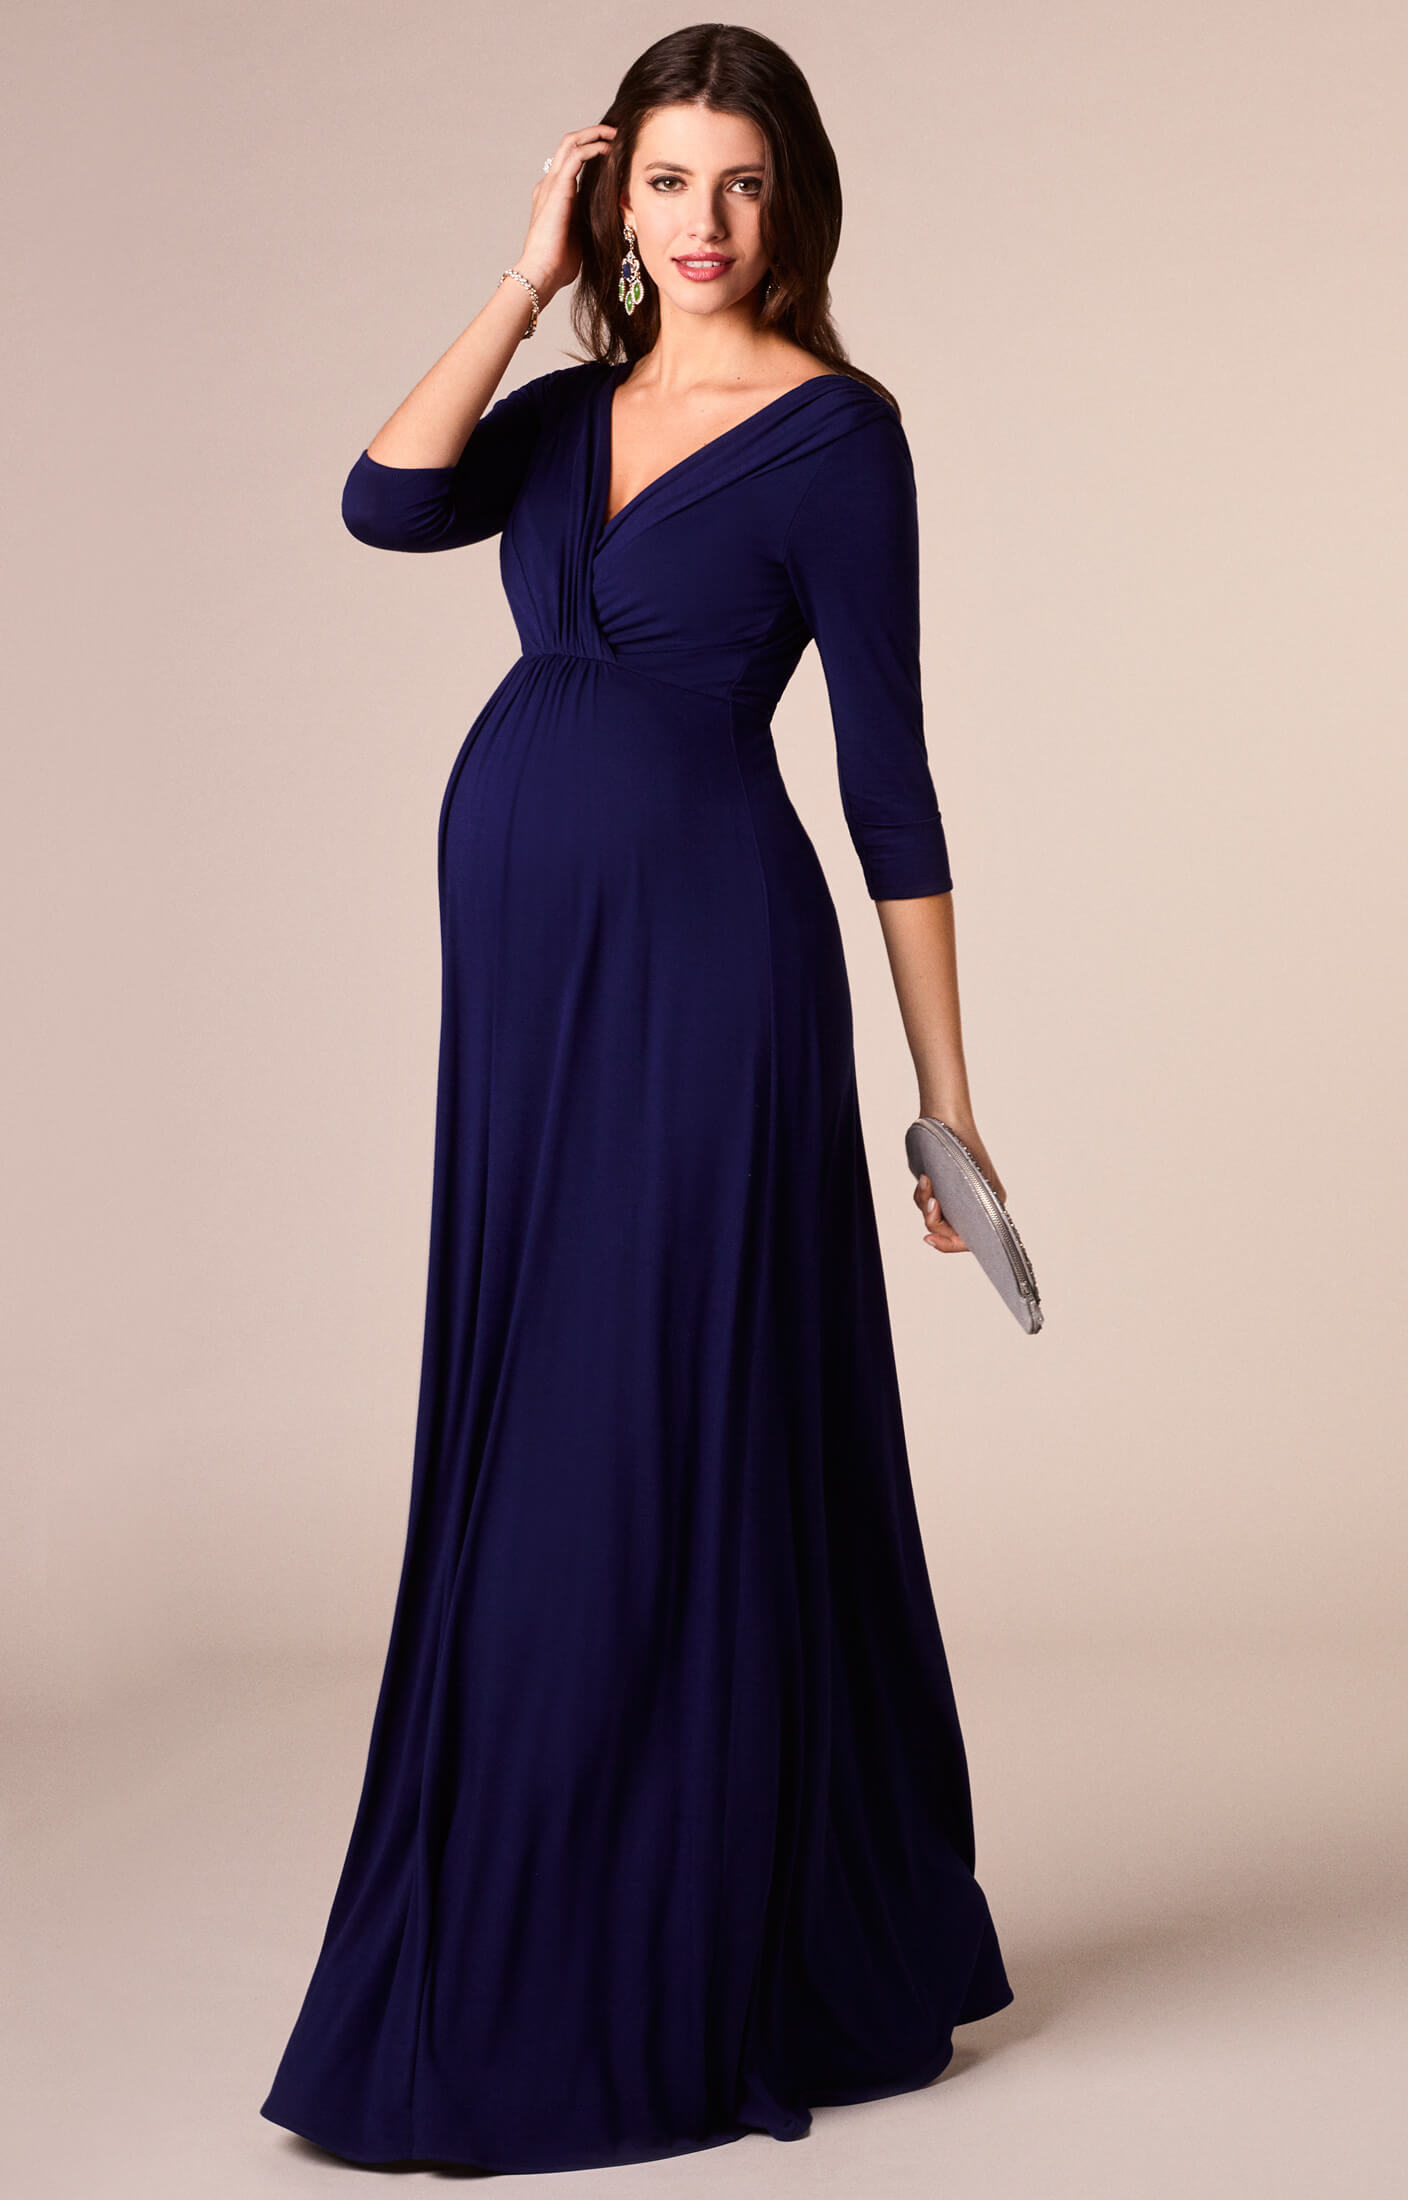 Willow maternity gown long eclipse blue maternity for Pregnancy dress for wedding